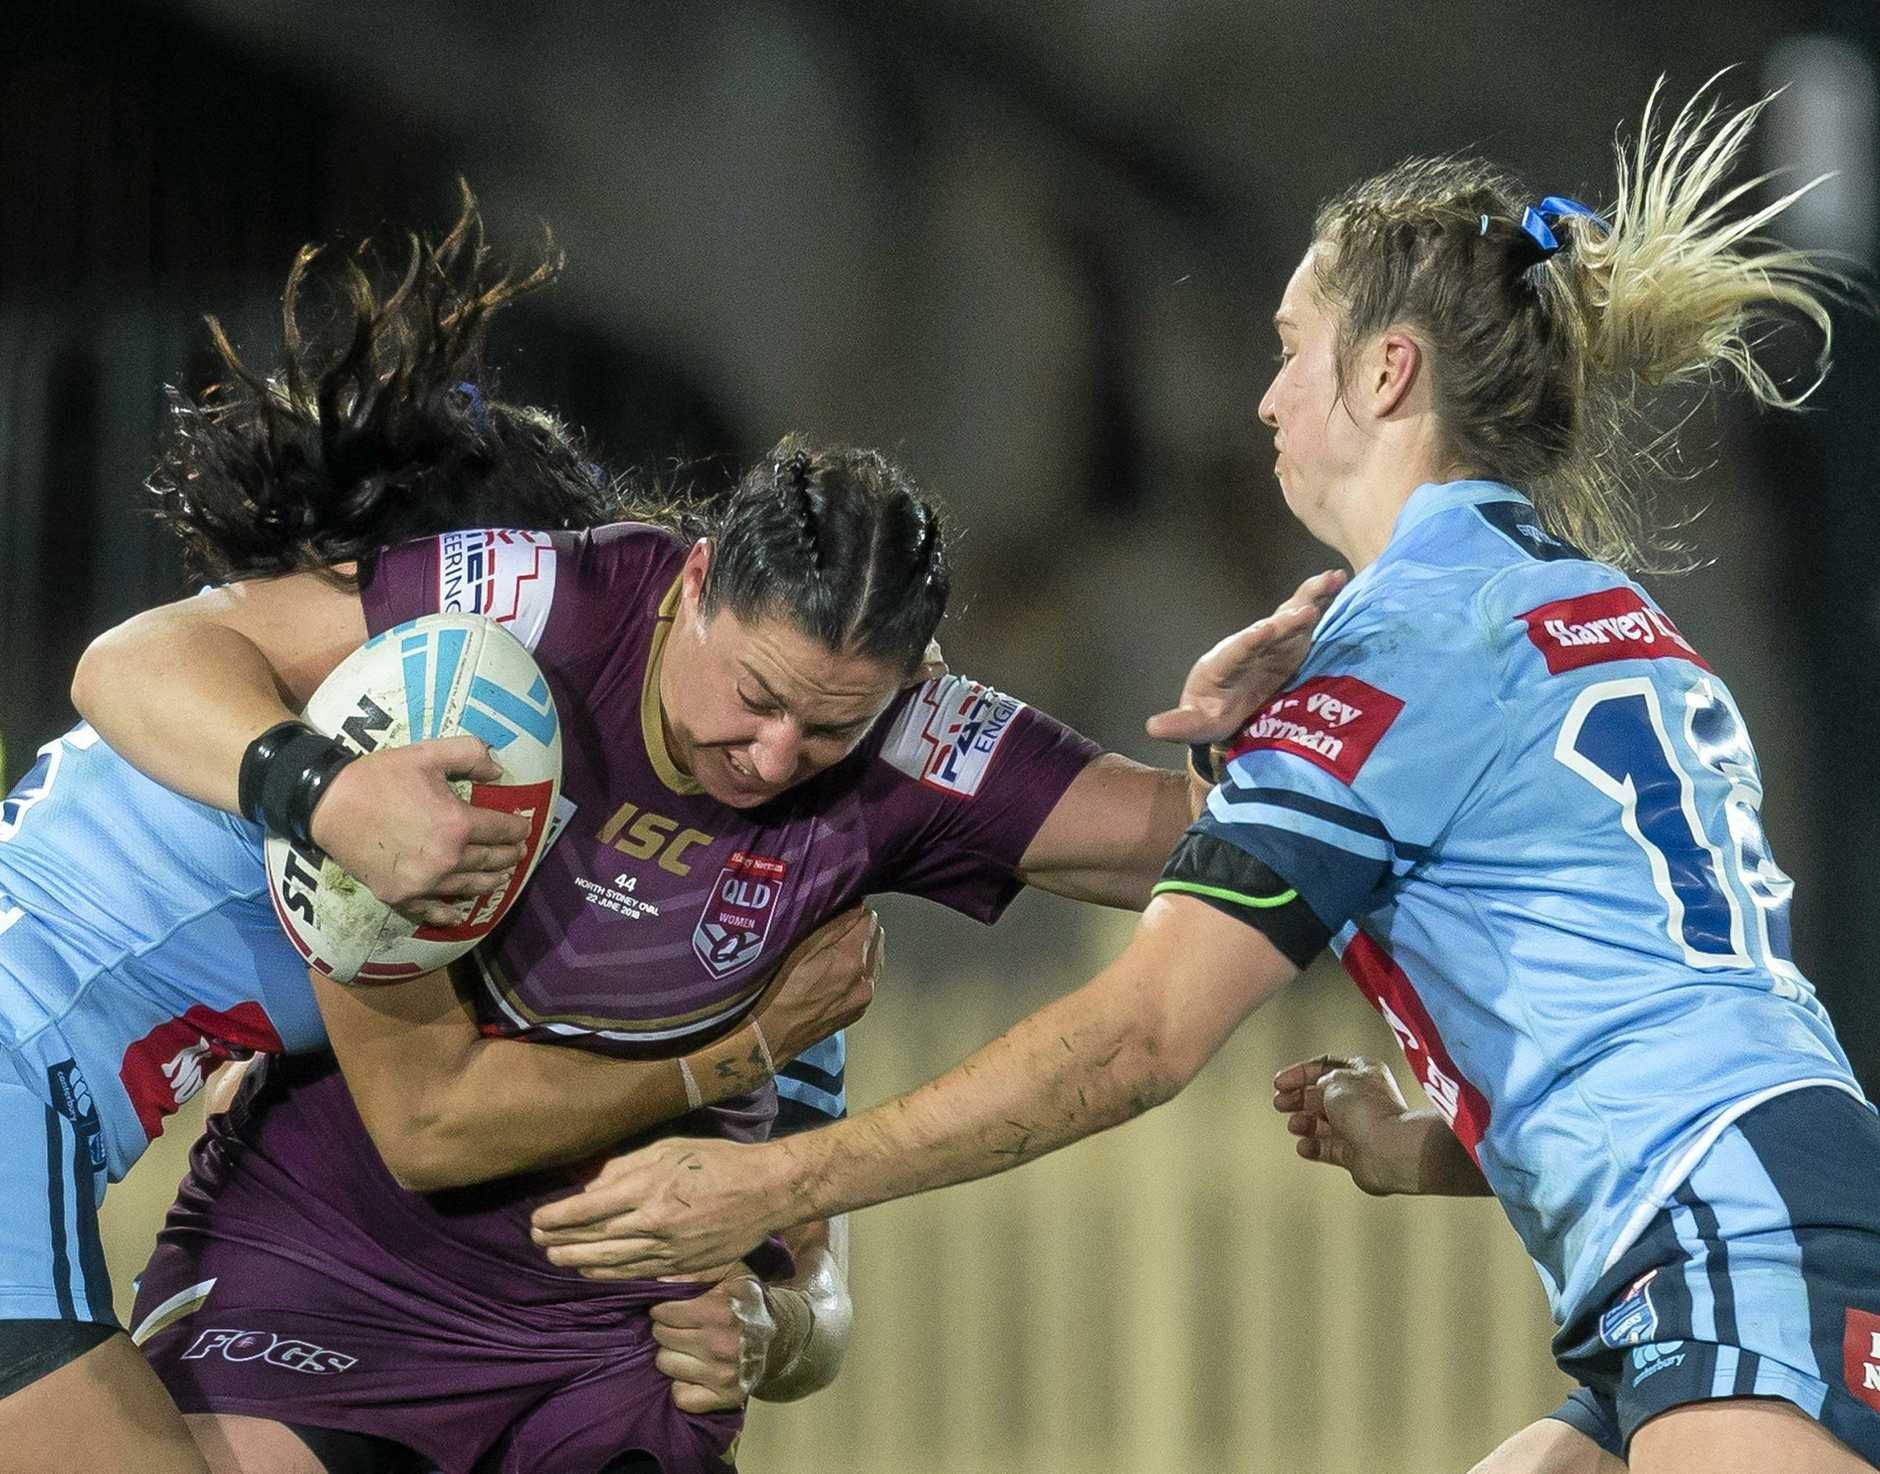 Stephanie Hancock of the Maroons is tackled during the Women's State of Origin match between the NSW Blues and Queensland Maroons at North Sydney Oval in Sydney, Friday, June 22, 2018. (AAP Image/Craig Golding) NO ARCHIVING, EDITORIAL USE ONLY